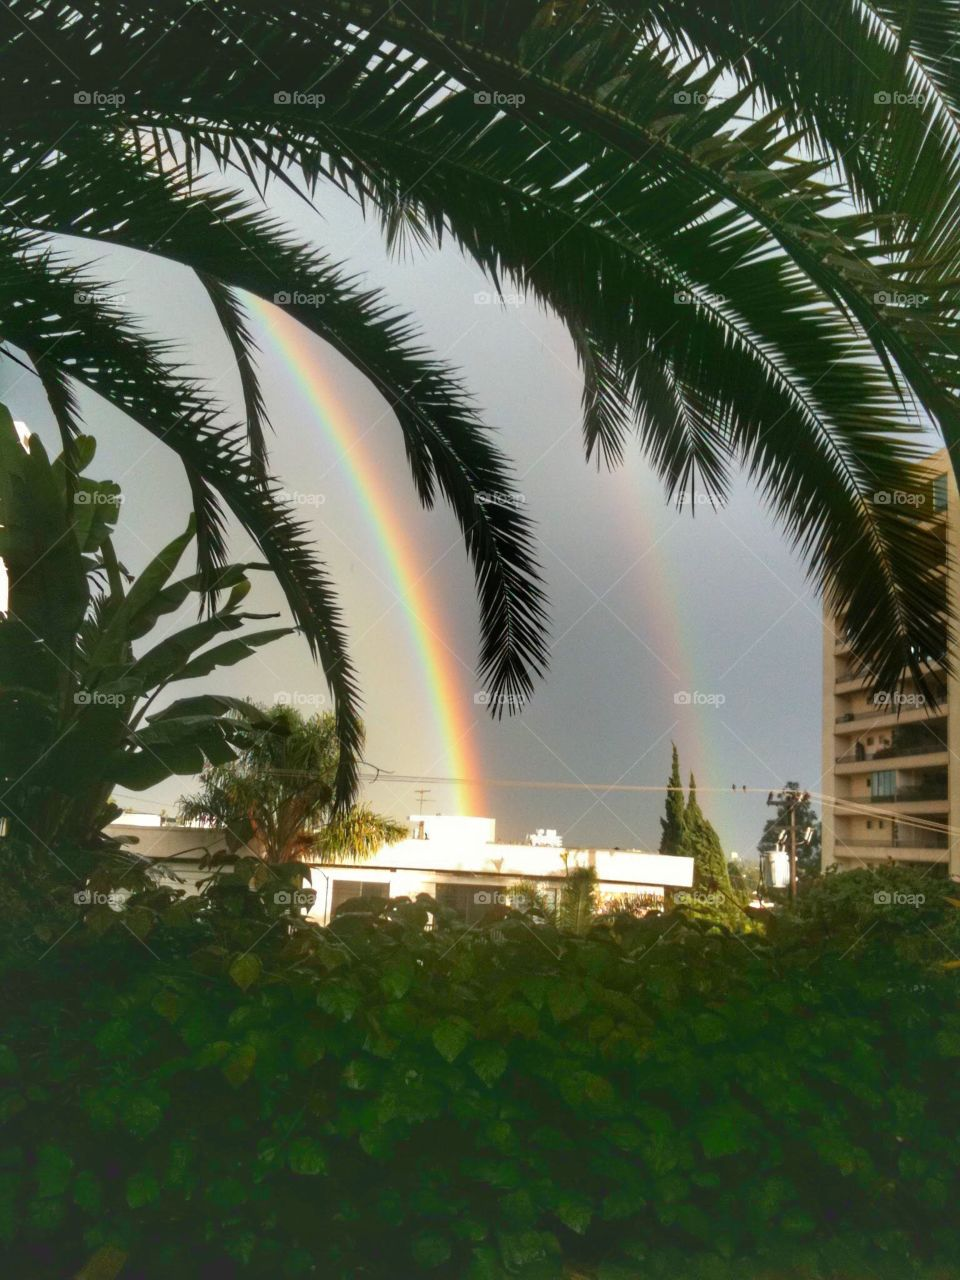 Double Rainbow Over WeHo - after a storm washes over the  city, rainbows add a dash of color to the dark sky framed by green palm trees.